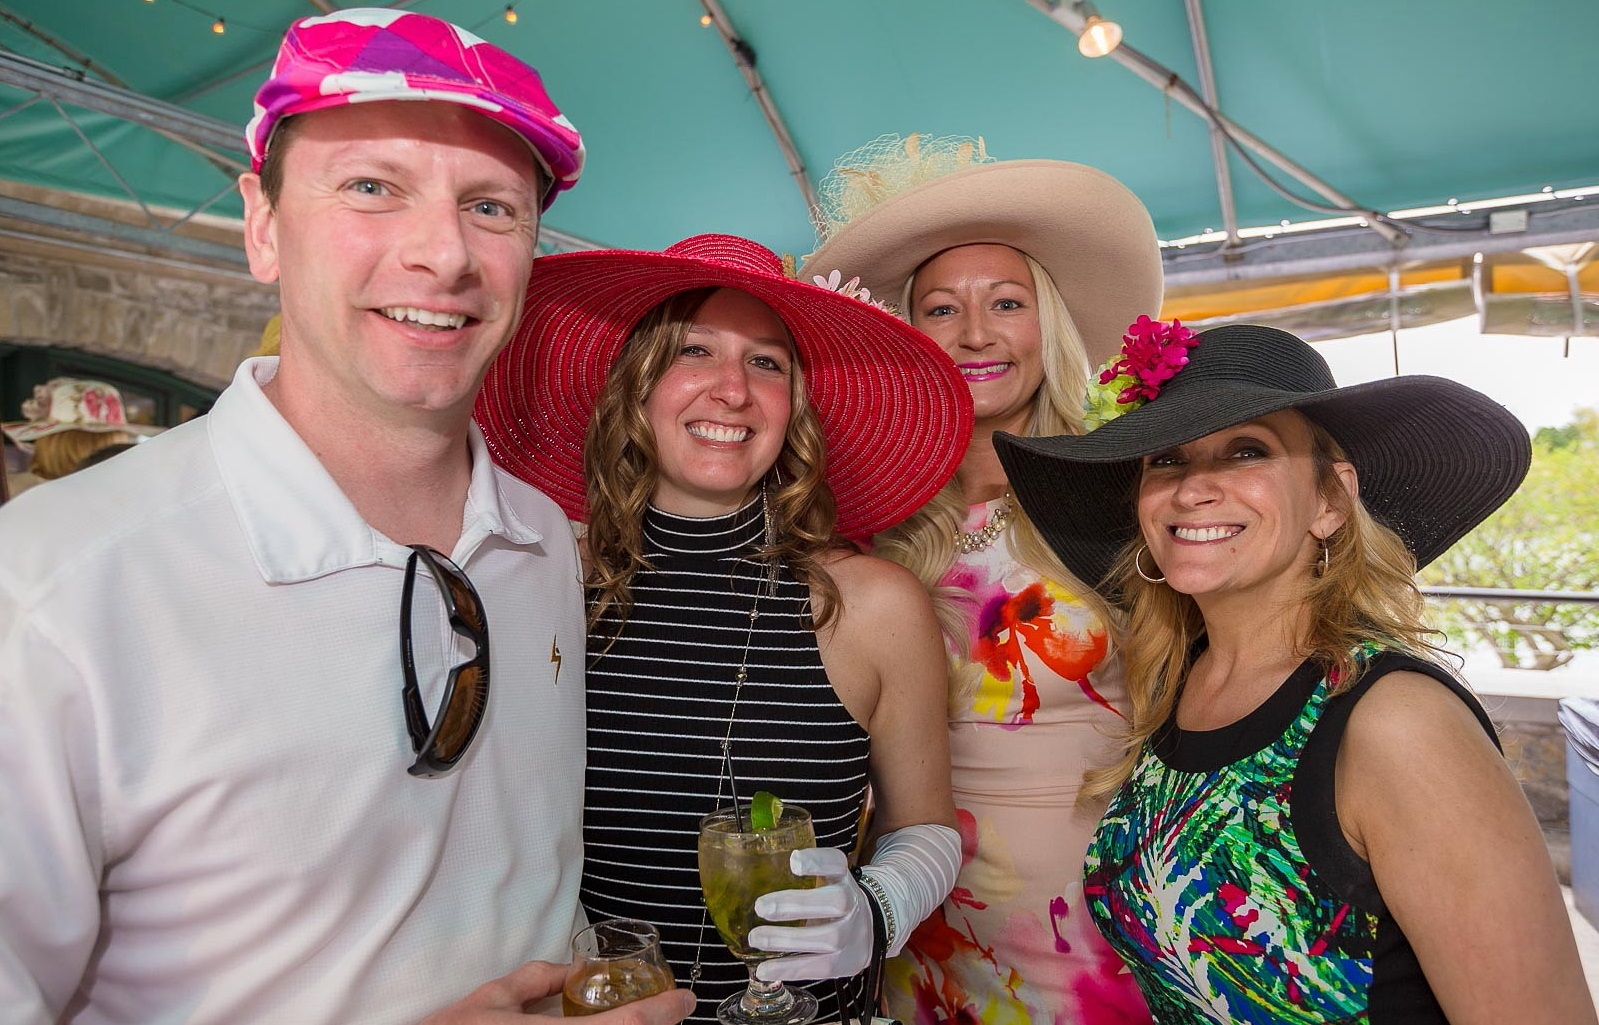 Smiling faces at a Kentucky Derby party in 2016. (Don Nieman/Special to The News)